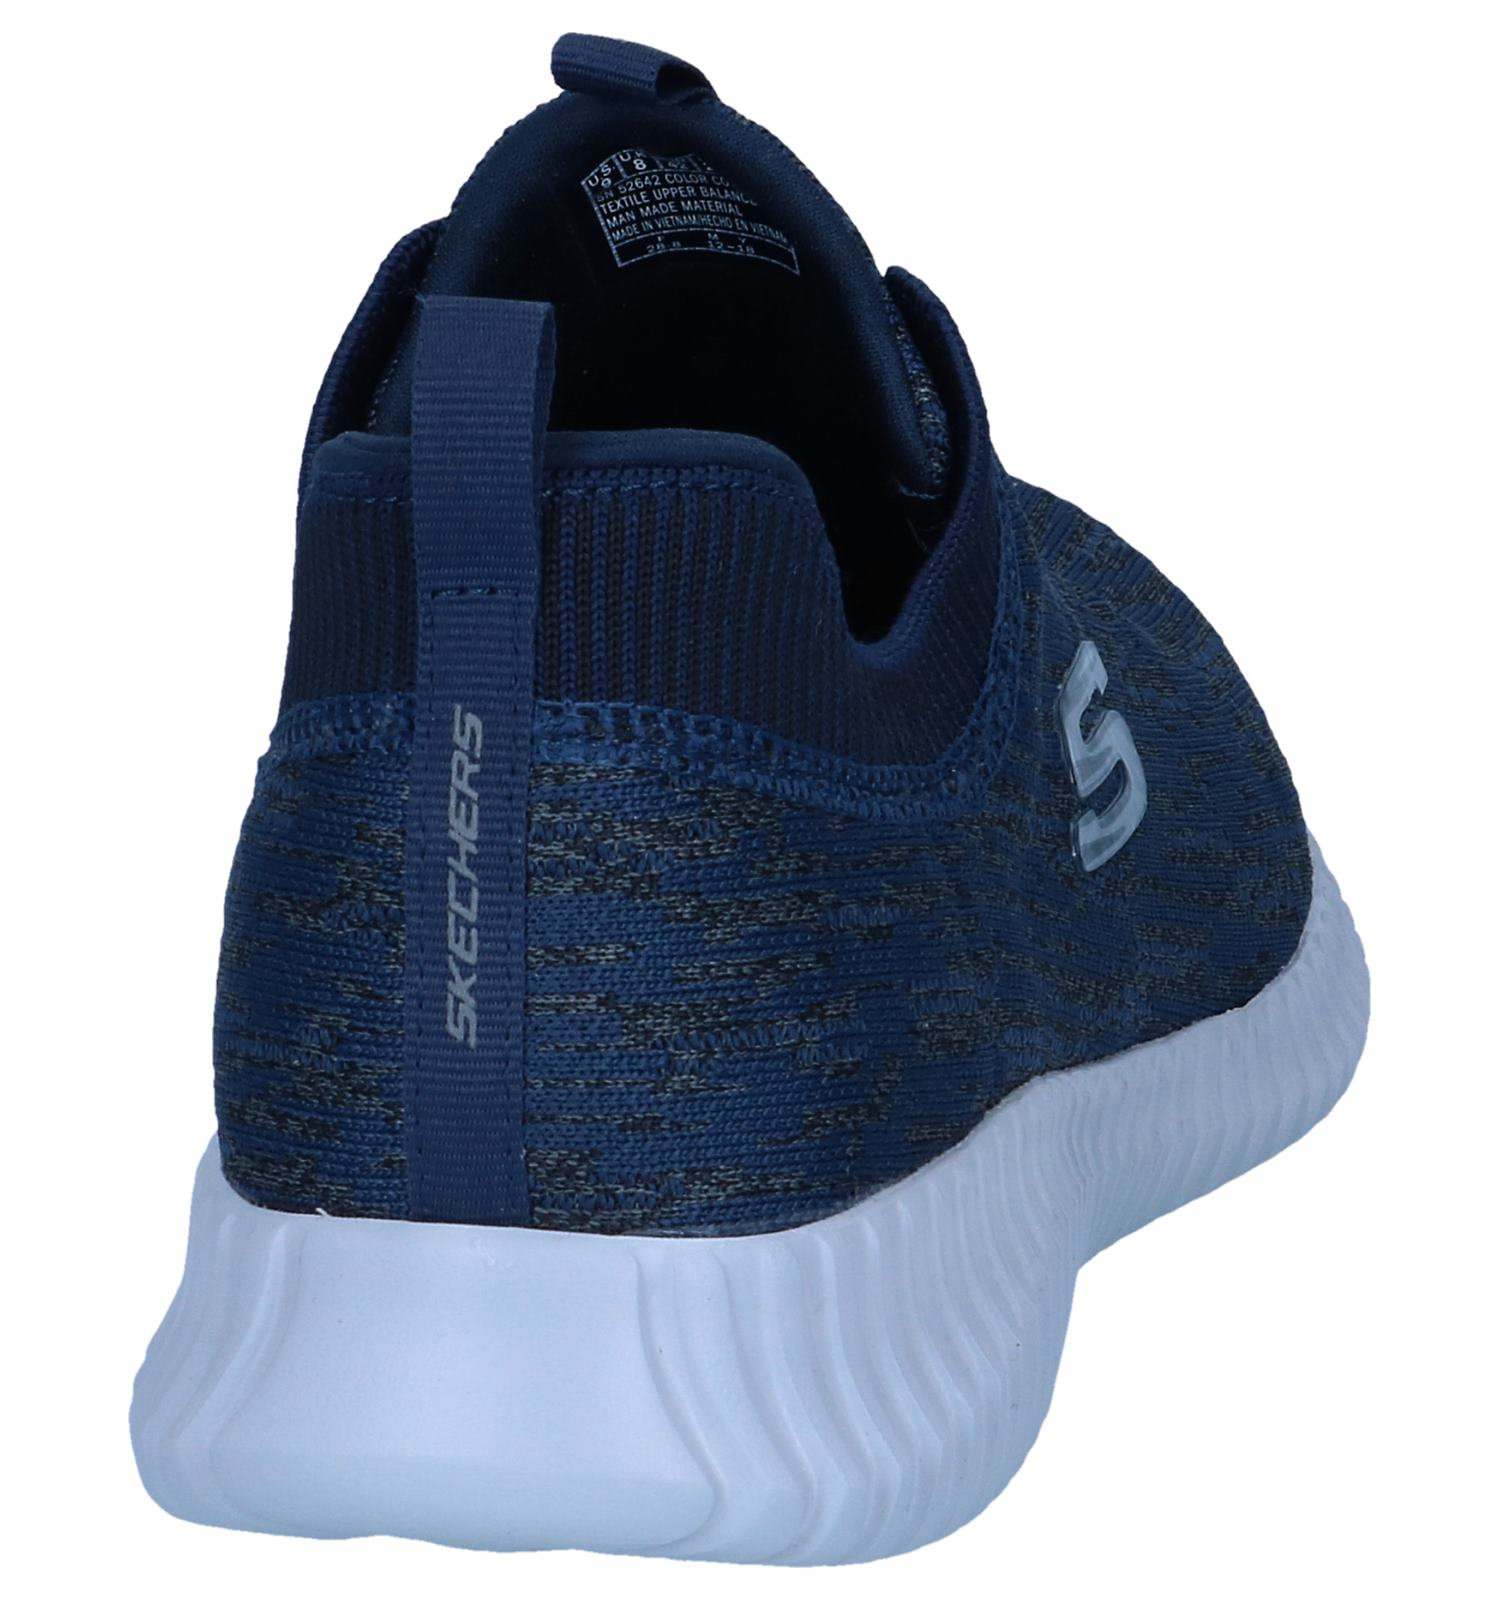 Blauwe Sneakers Skechers cooled Air kZOiTPwXu